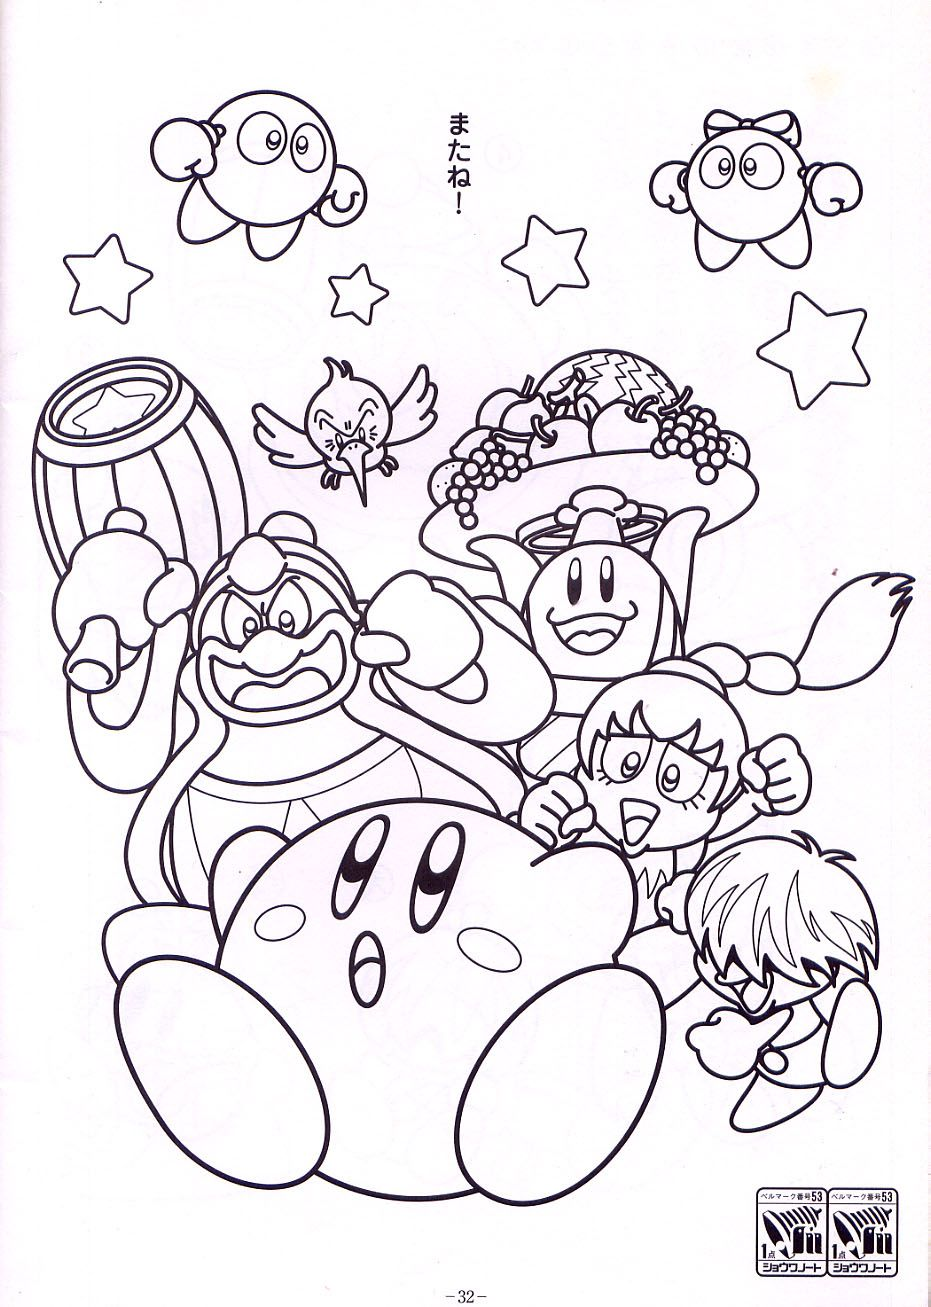 Kirby Coloring Page  Monster coloring pages, Mario coloring pages